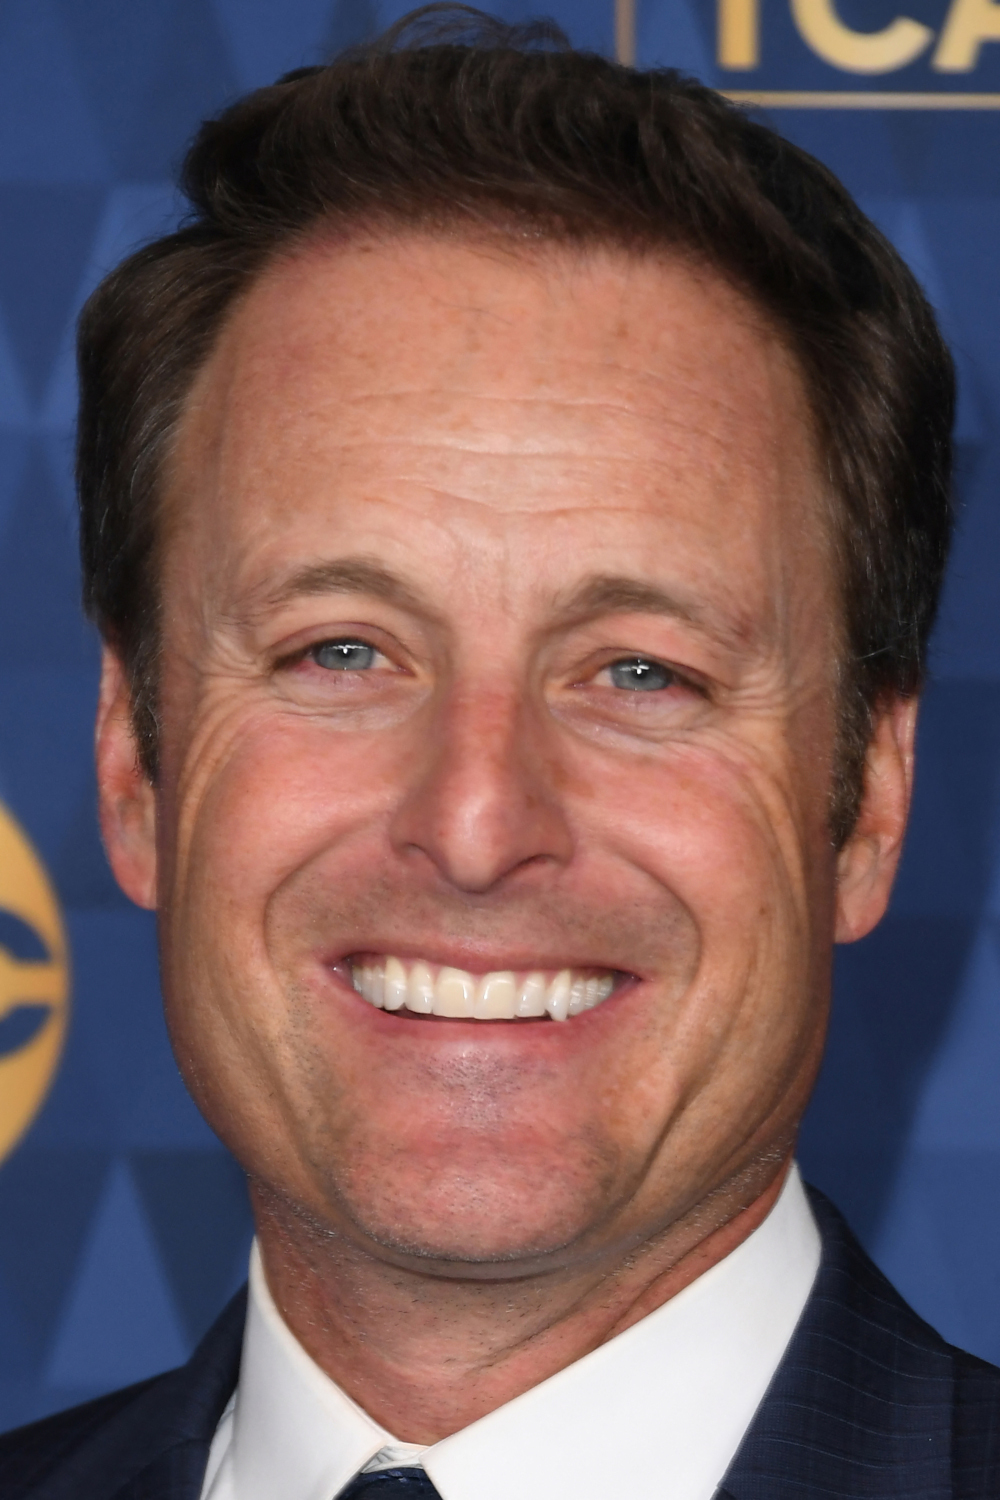 In this file photo host of 'The Bachelor' Chris Harrison attends ABC's Winter TCA 2020 Press Tour in Pasadena, California, January 8, 2020. — AFP pic